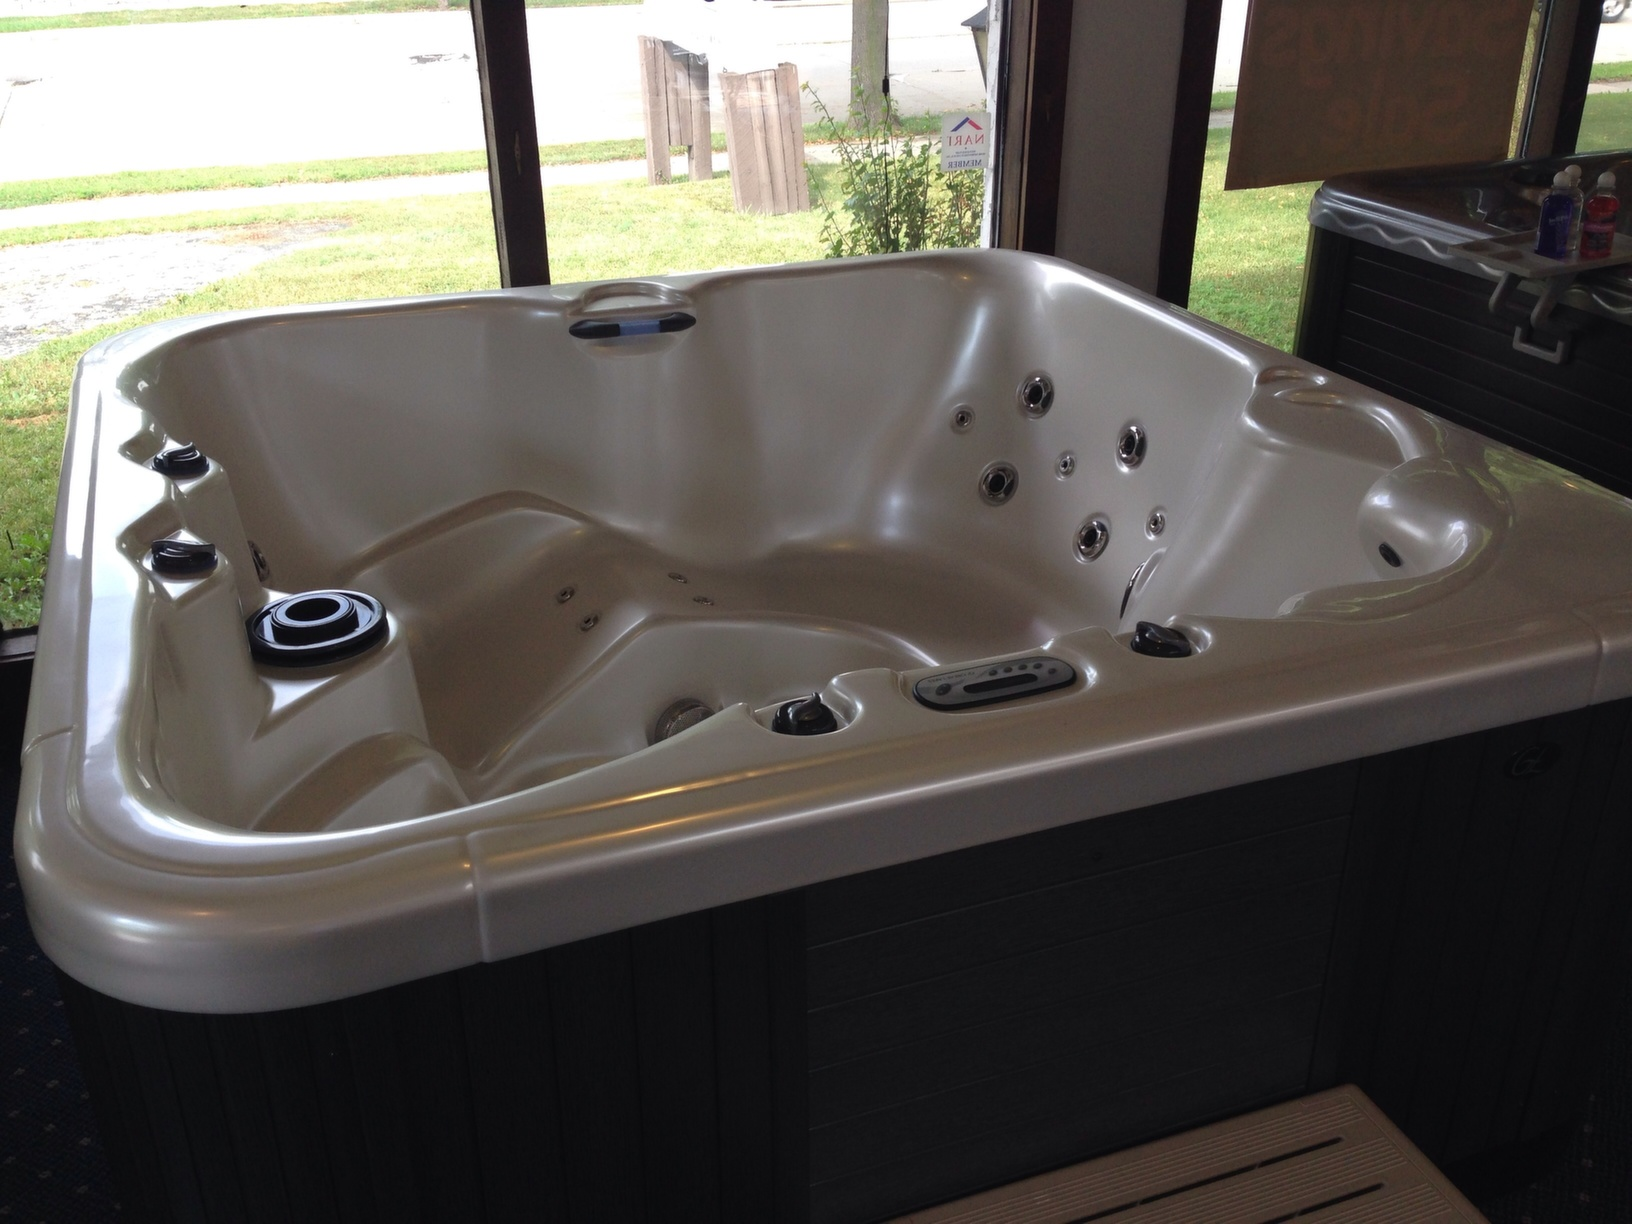 Jacuzzi Pool Repairs Jacuzzi Tub Parts Memphis Shop Whirlpool Tub Air Bath